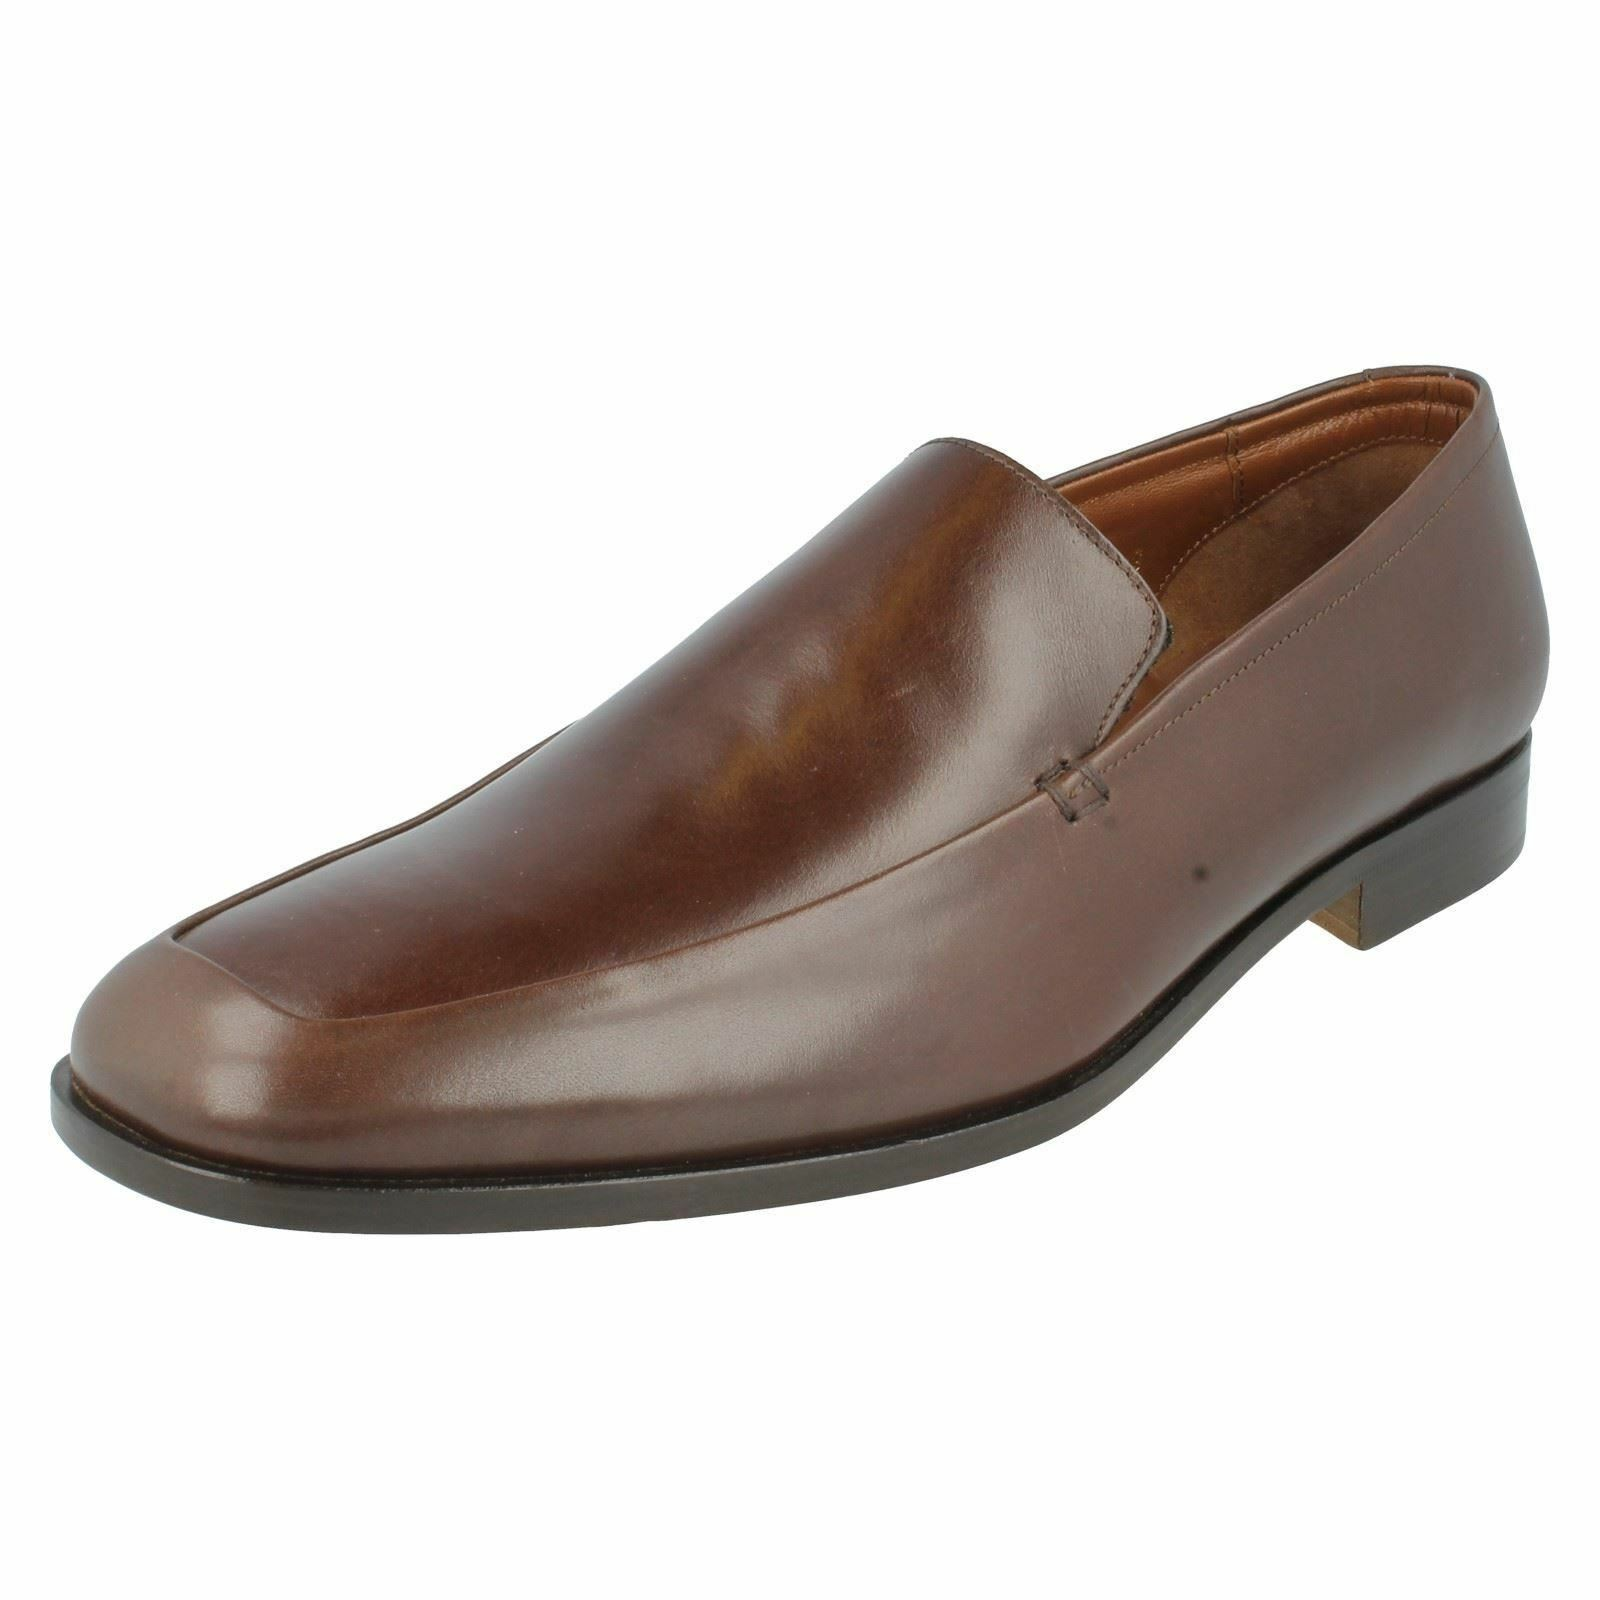 Grenson NICE 7786 Mens Brown Leather Slip-on shoes G Fit  (R38A) (Kett)